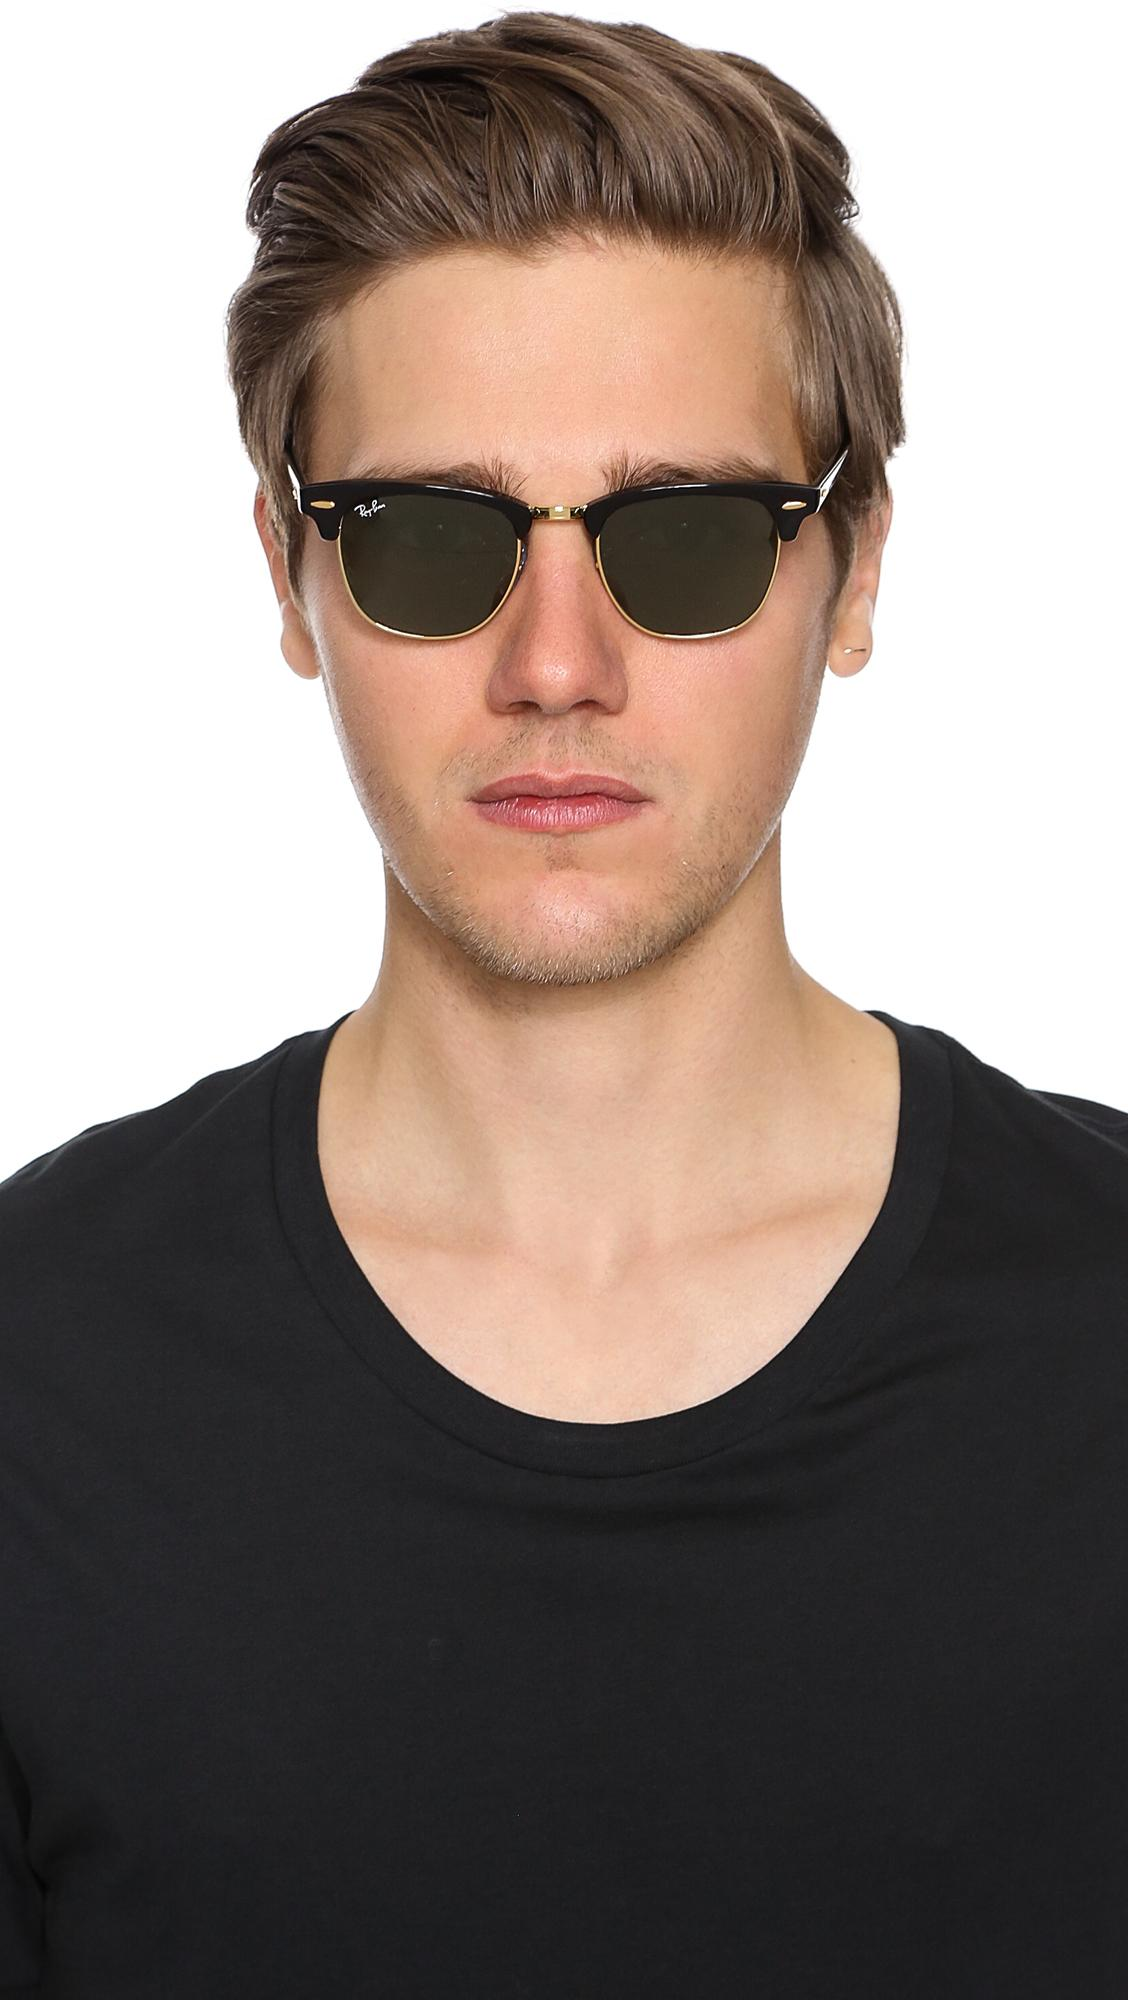 Aviator Sun Glasses furthermore Lenses Electric Knoxvil Xl All in addition Collectiontdwn Tom Ford Sunglasses Men Gold further Oakley Flak Jacket Matte White Jade Iridium Sunglasses 26 221 likewise Sunglasses For Men Face Shape. on ray ban sungl